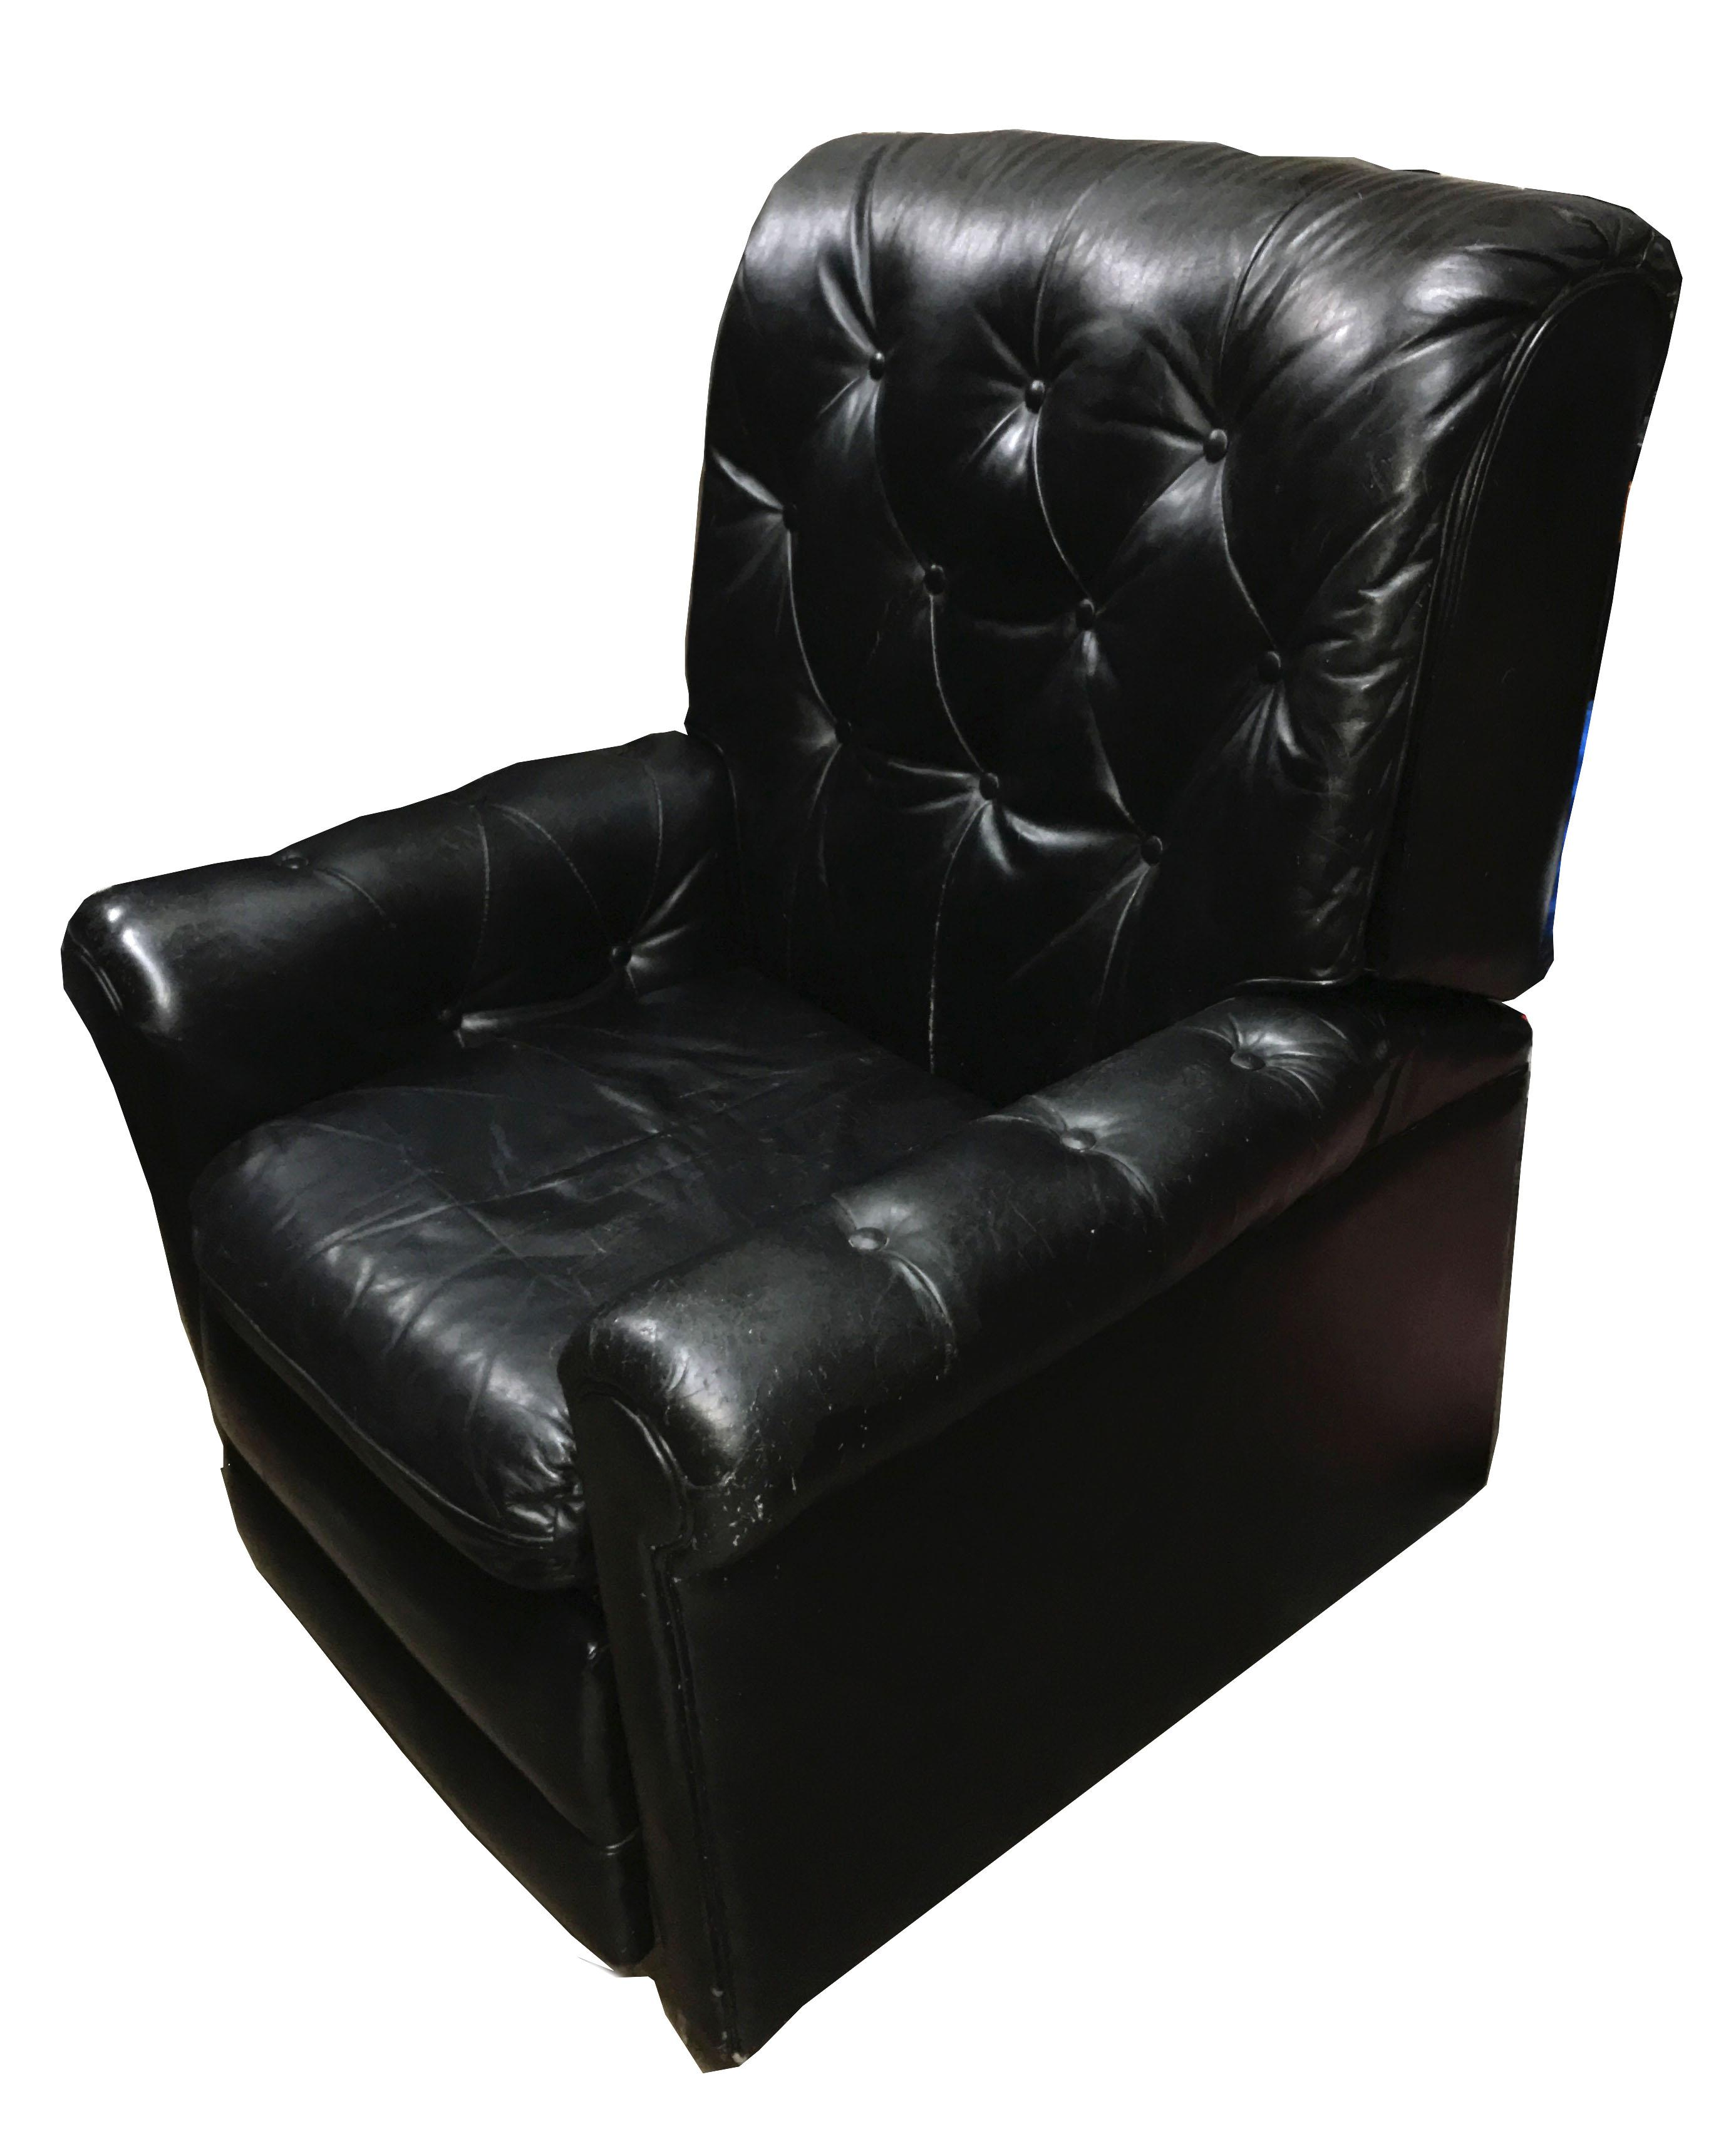 Gentil Mid Century Chesterfield Black Tufted Leather Recliner Chair   Image 3 Of 7